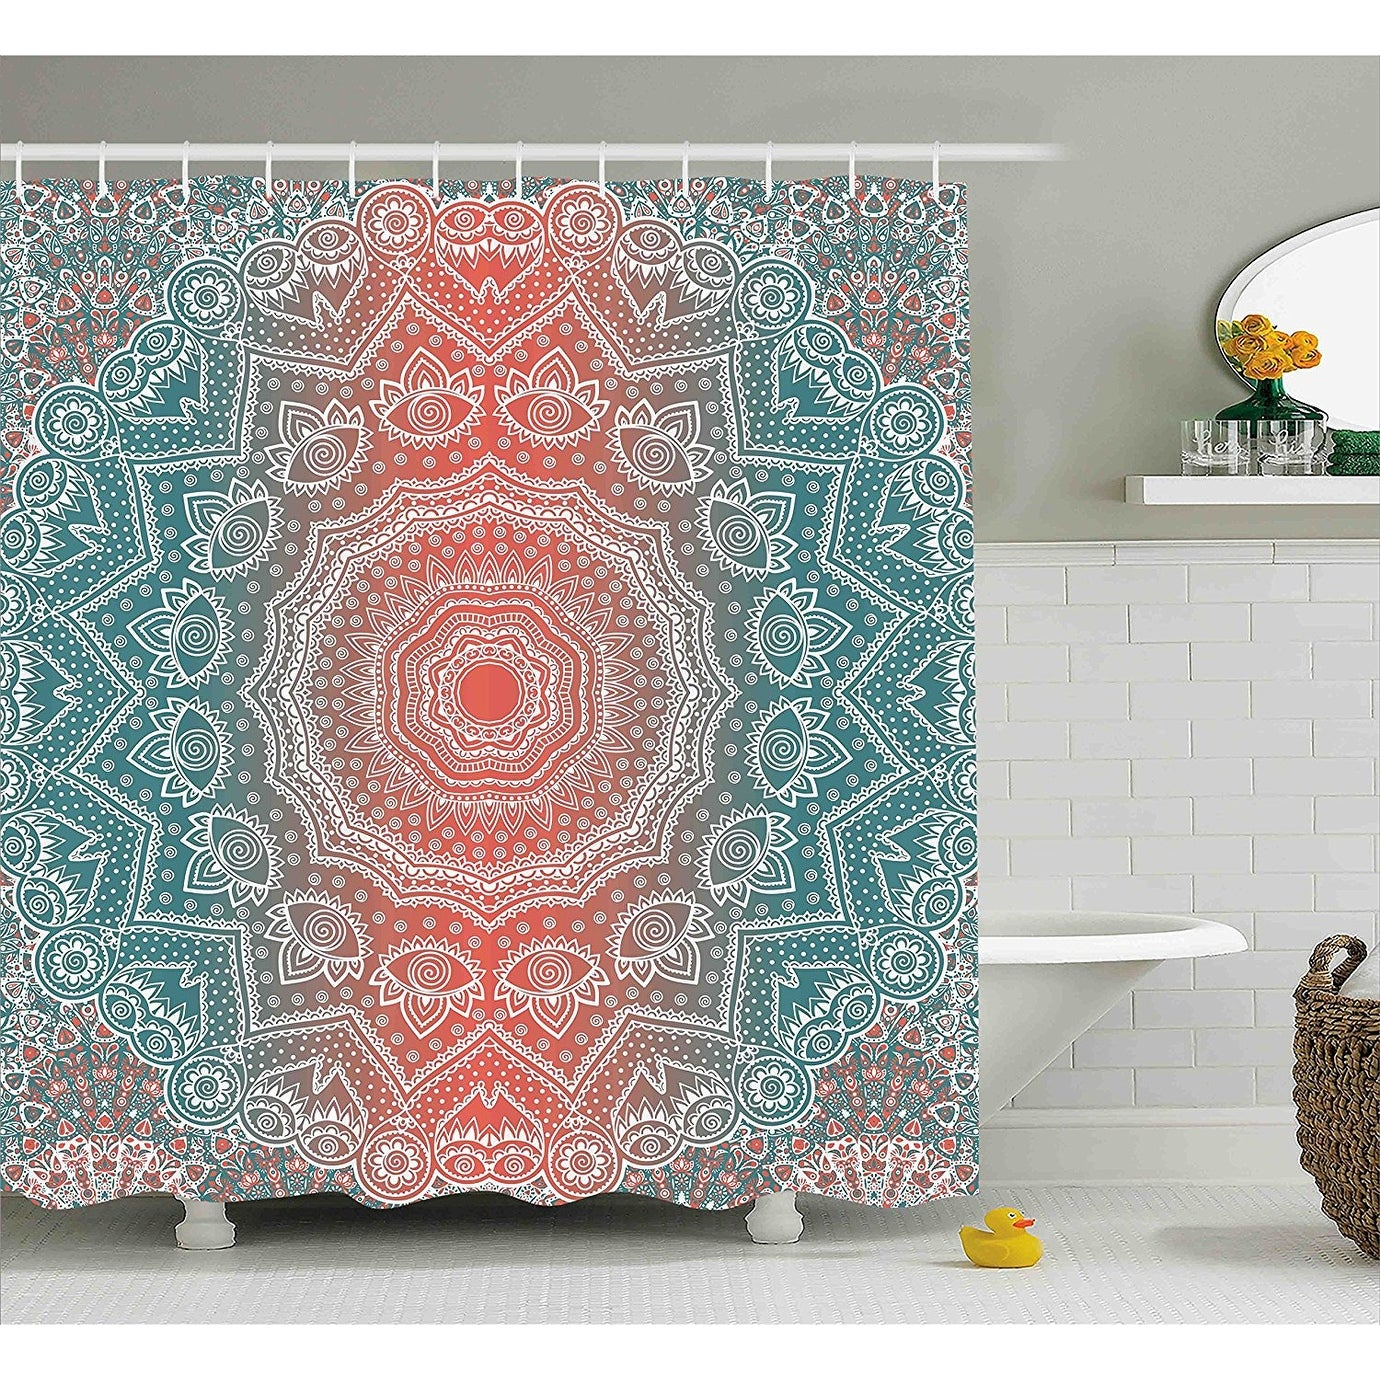 Shop Black Friday Deals On Motif With Floral Coral And Teal Shower Curtain Overstock 24322411